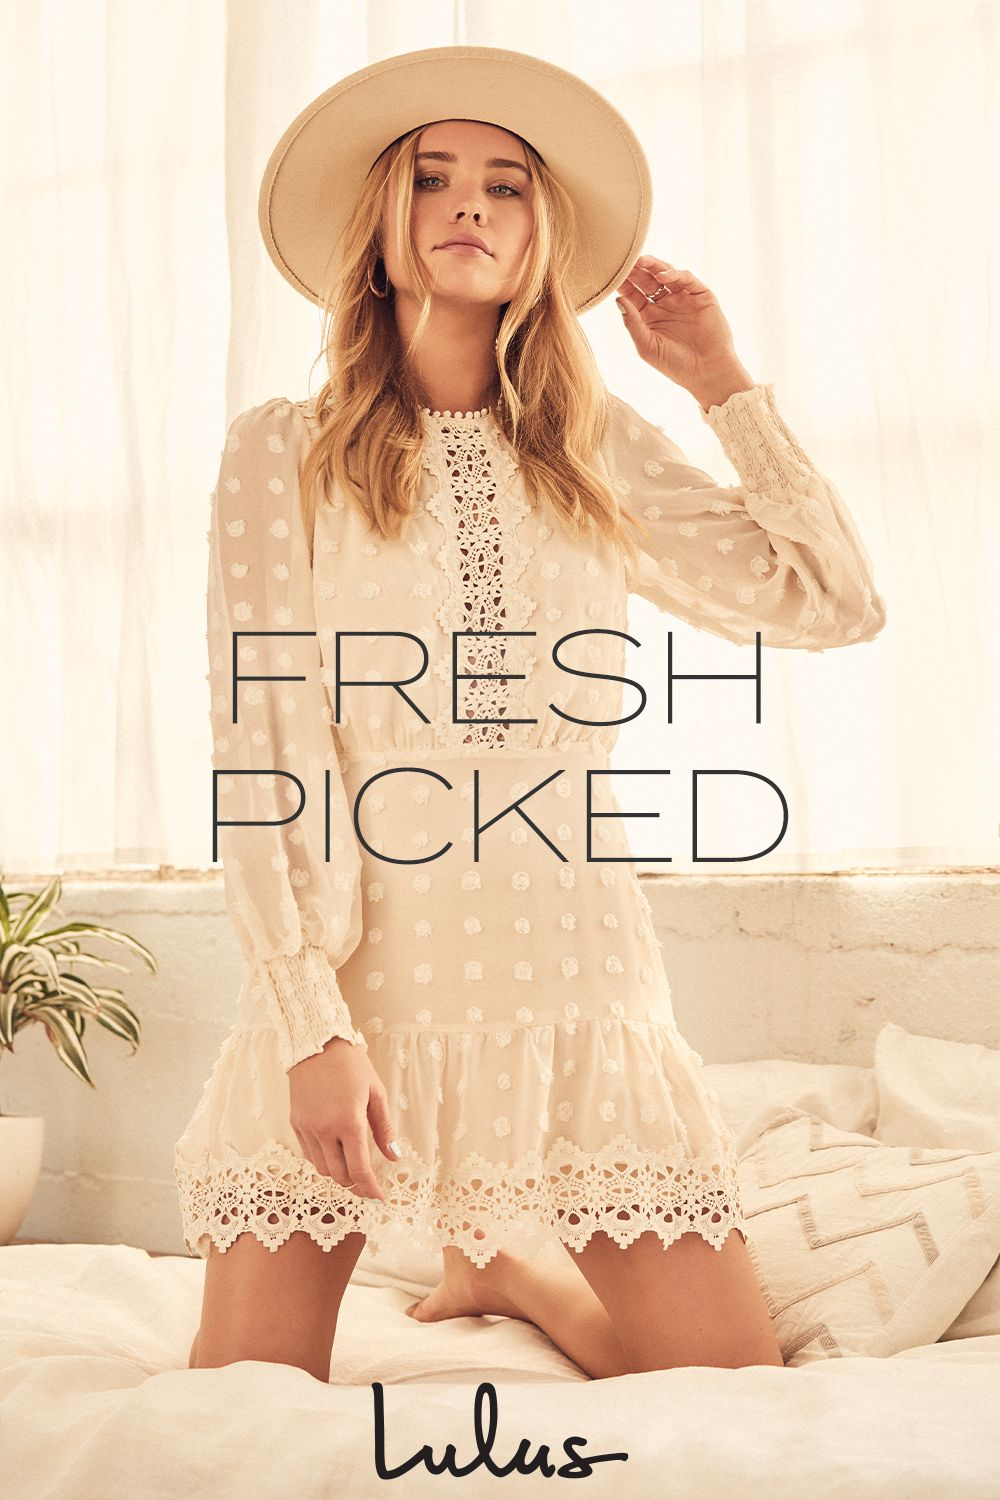 Make this spring as soft and sweet as possible - think dreamy detailing, pastel hues and pretty prints.